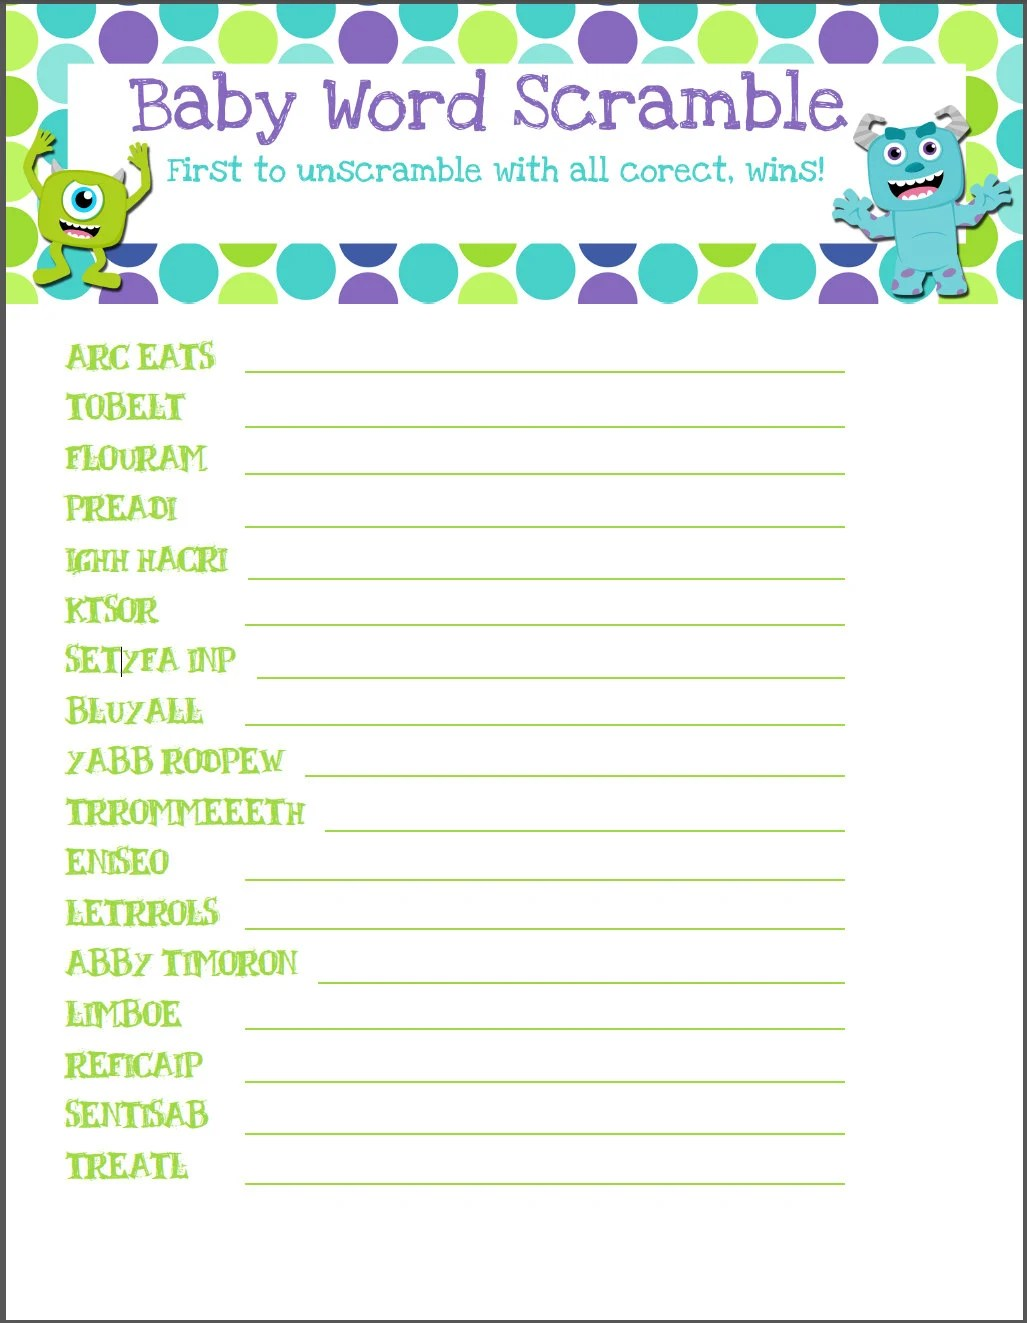 Monsters Inc Baby Shower Game Word Scramble